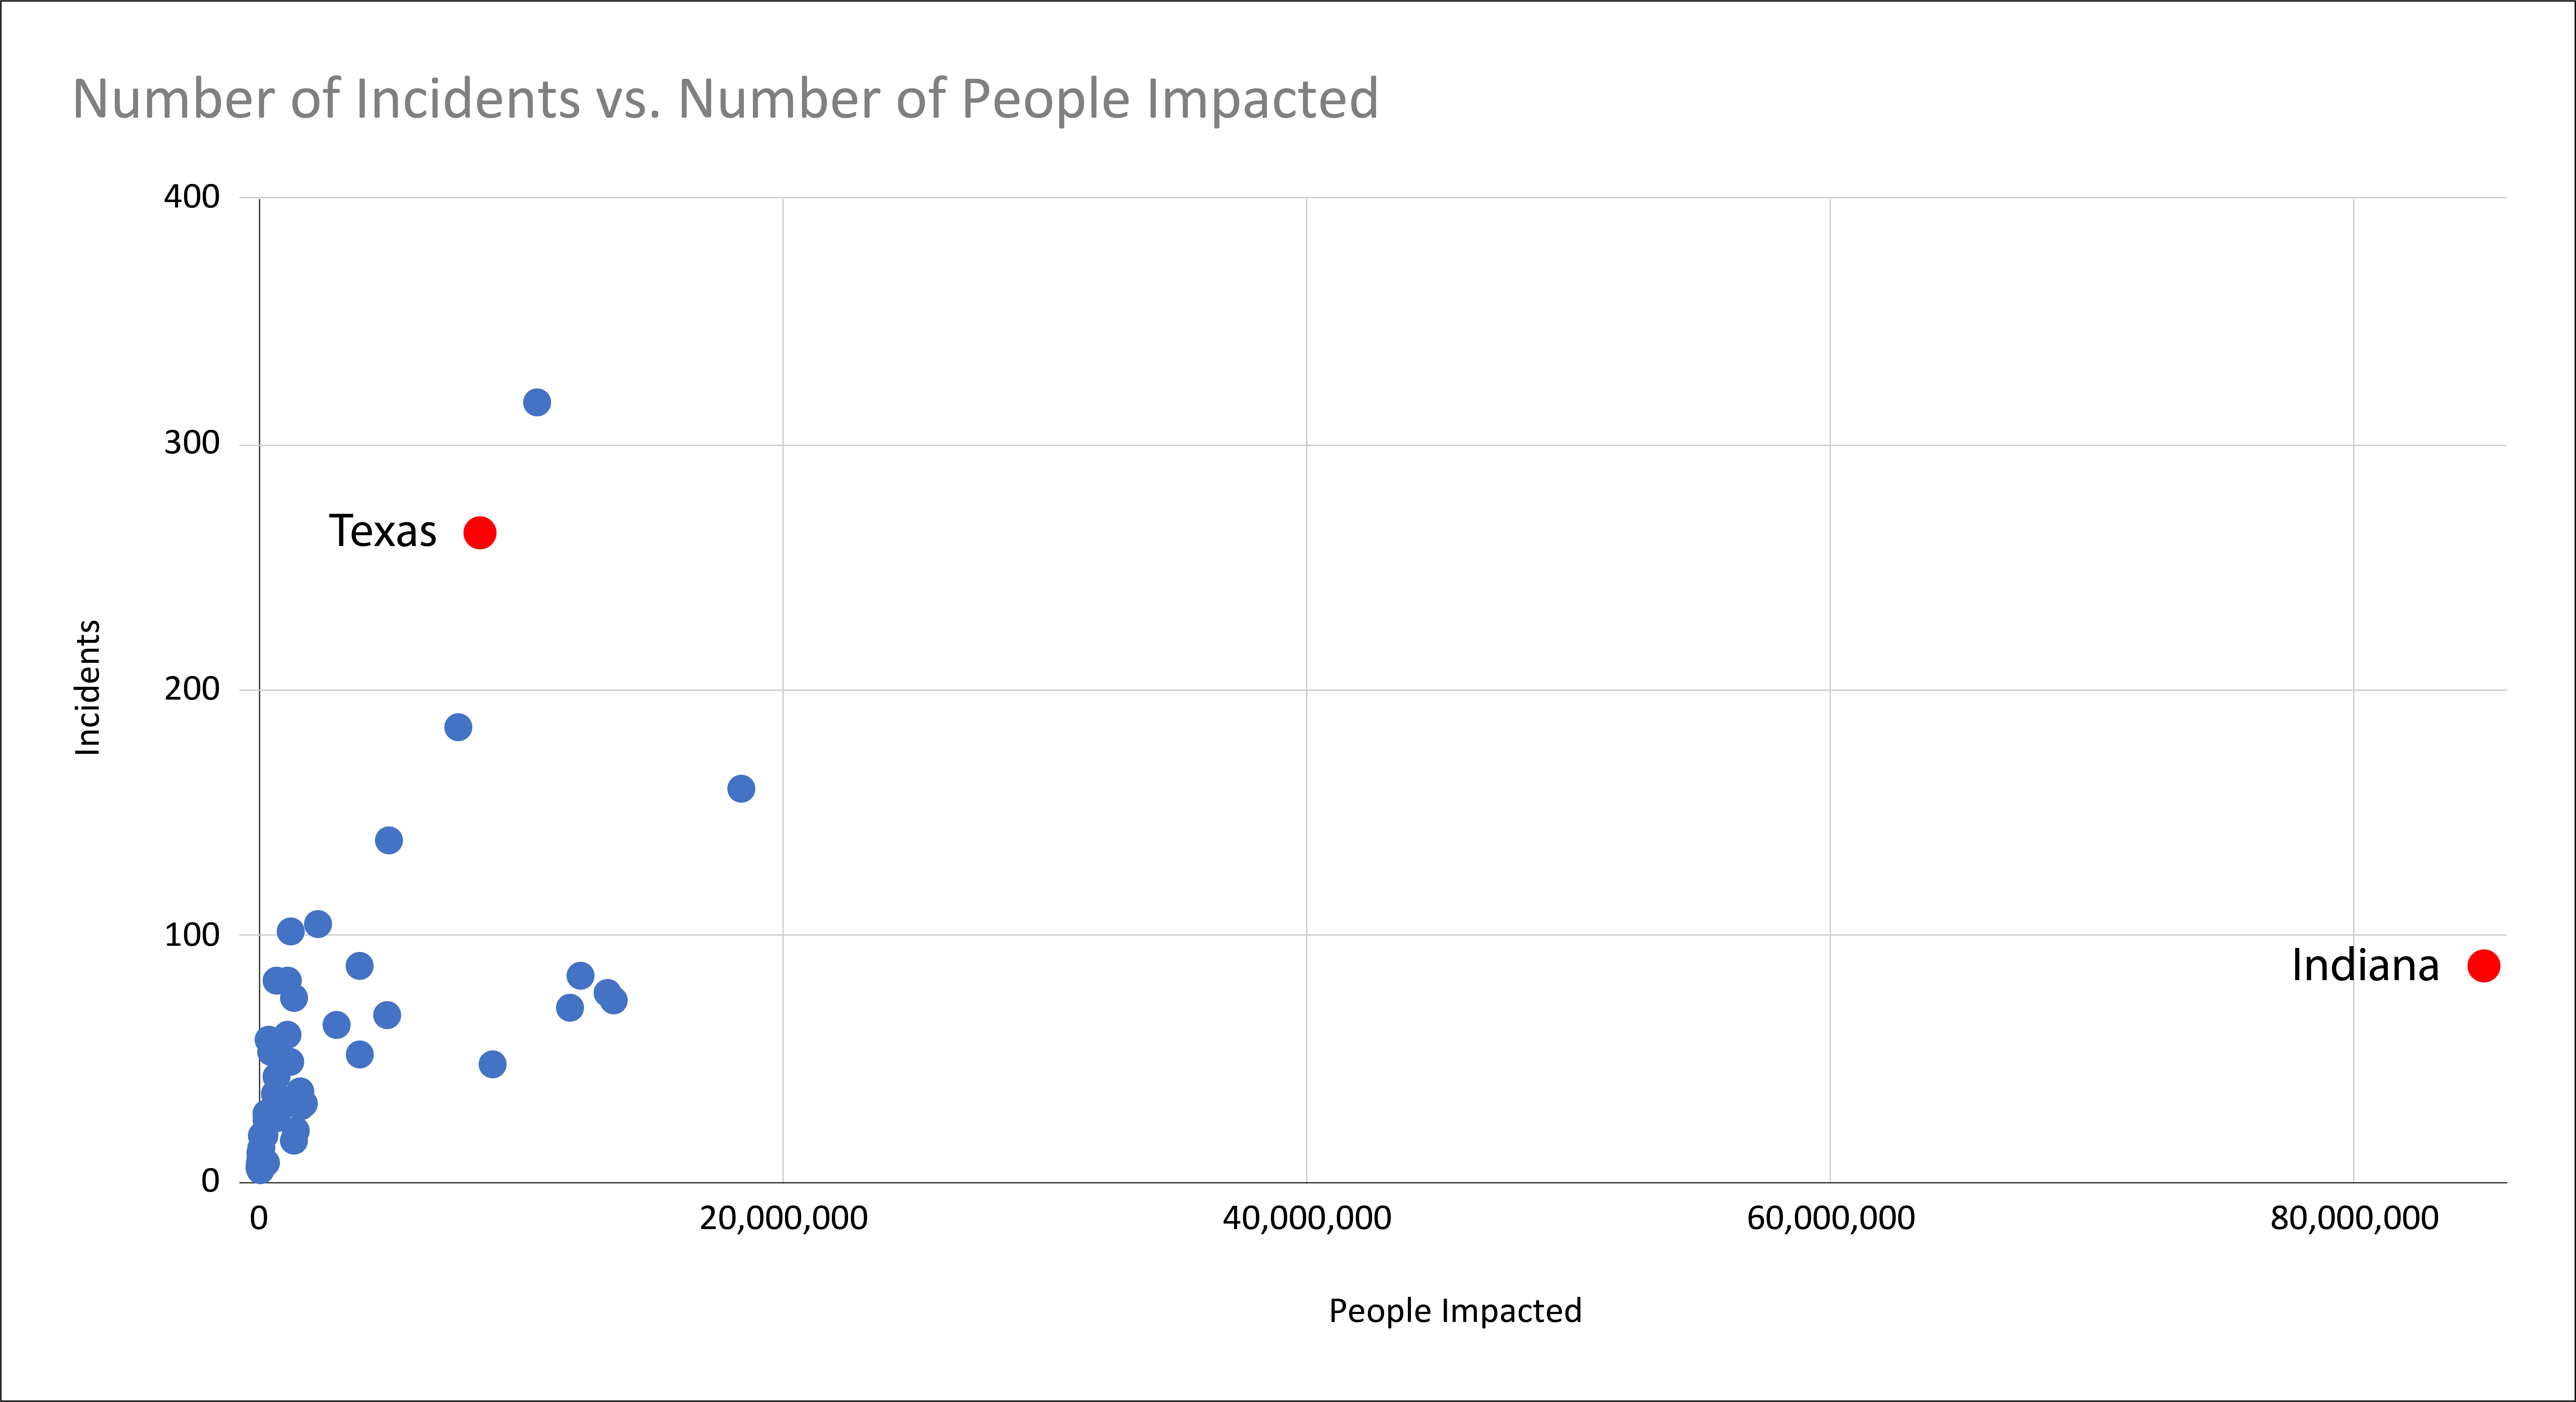 Scatter Chart: Number of Incidents versus Number of People Impacted